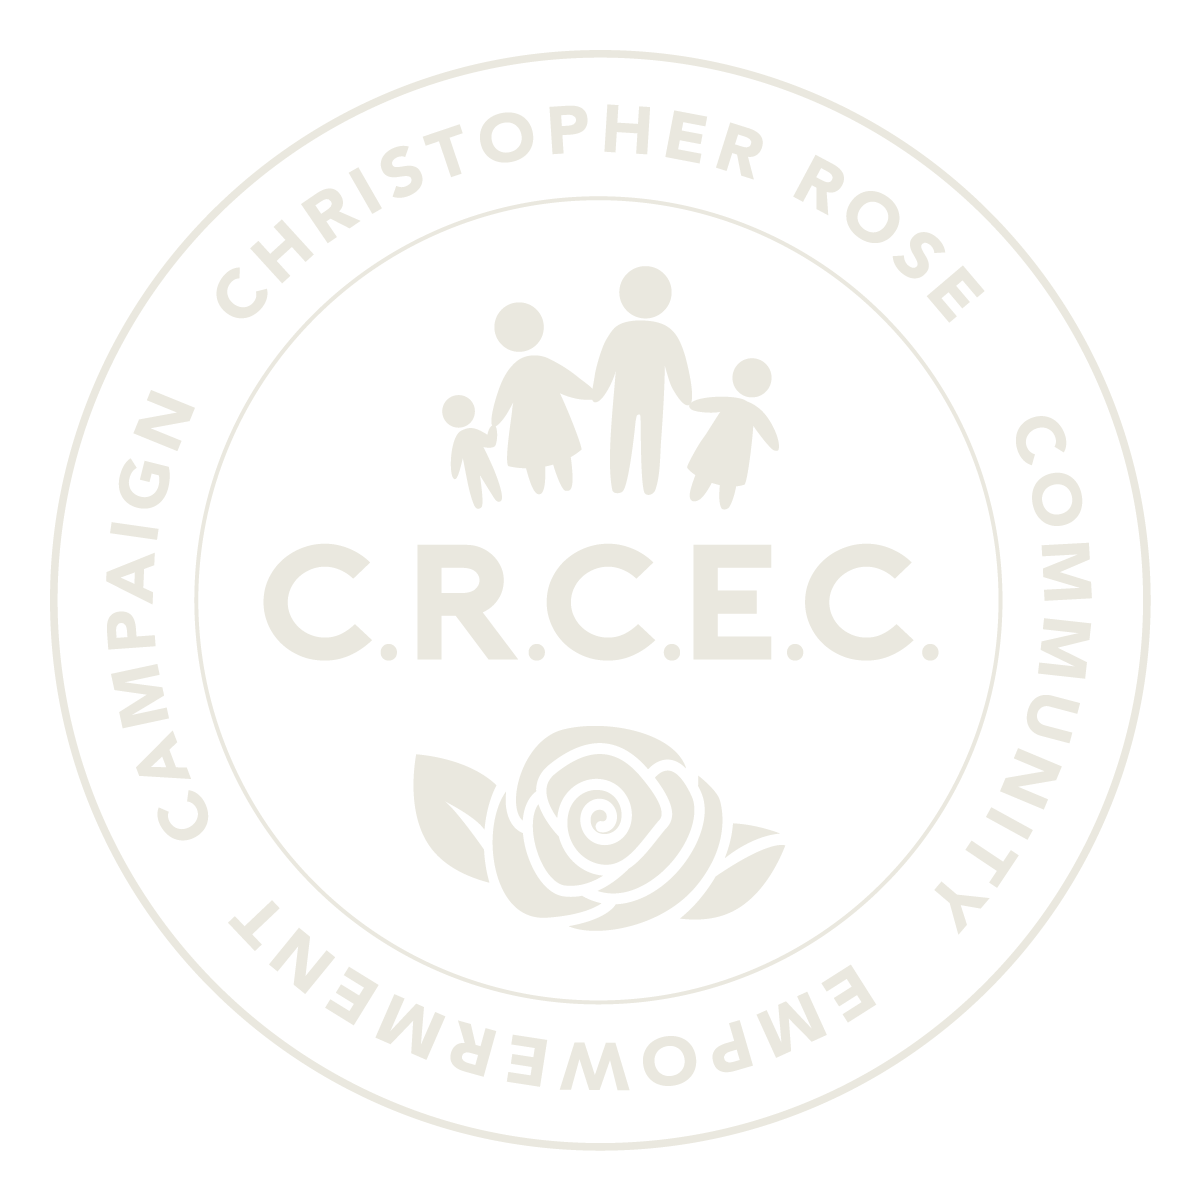 Christopher Rose Community Empowerment Campaign